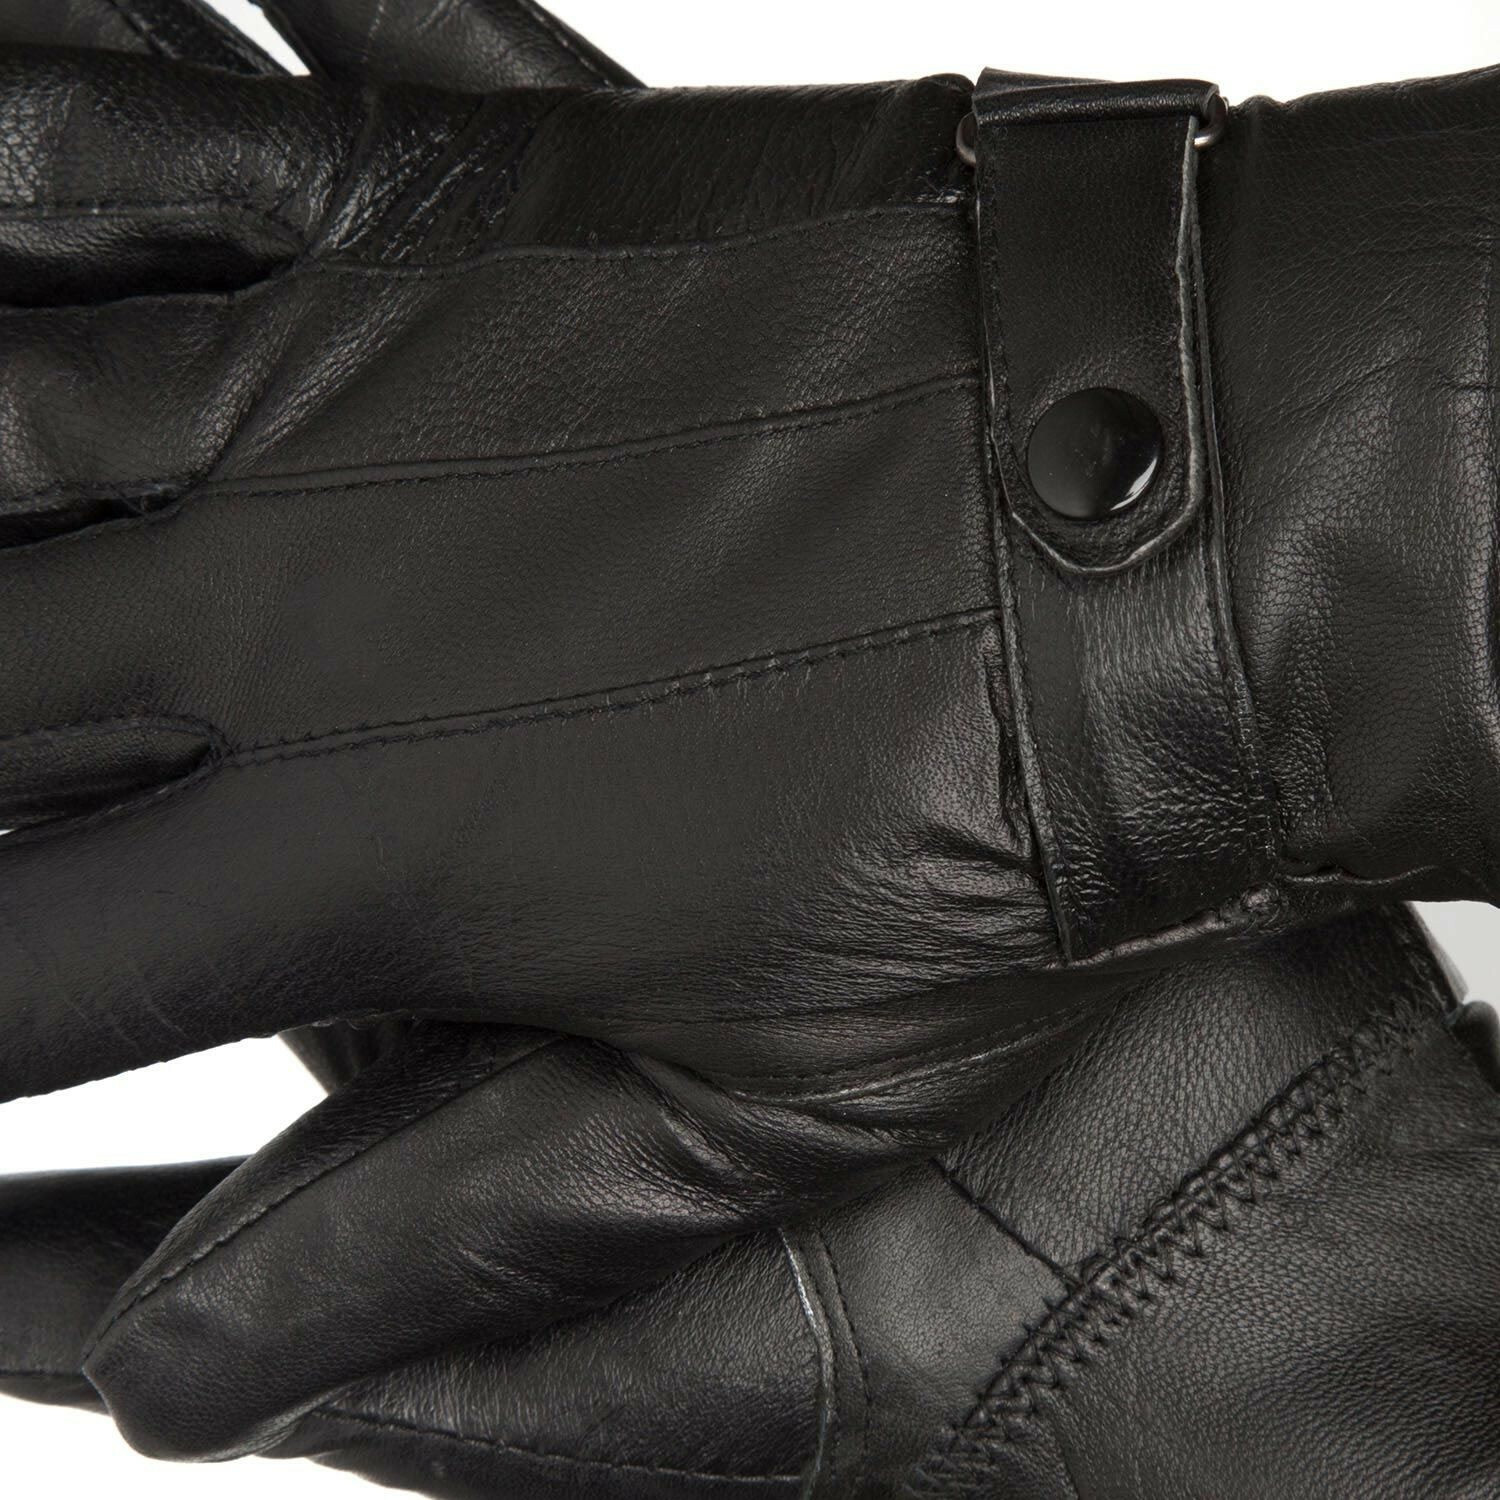 LOVELY LEATHER GLOVES